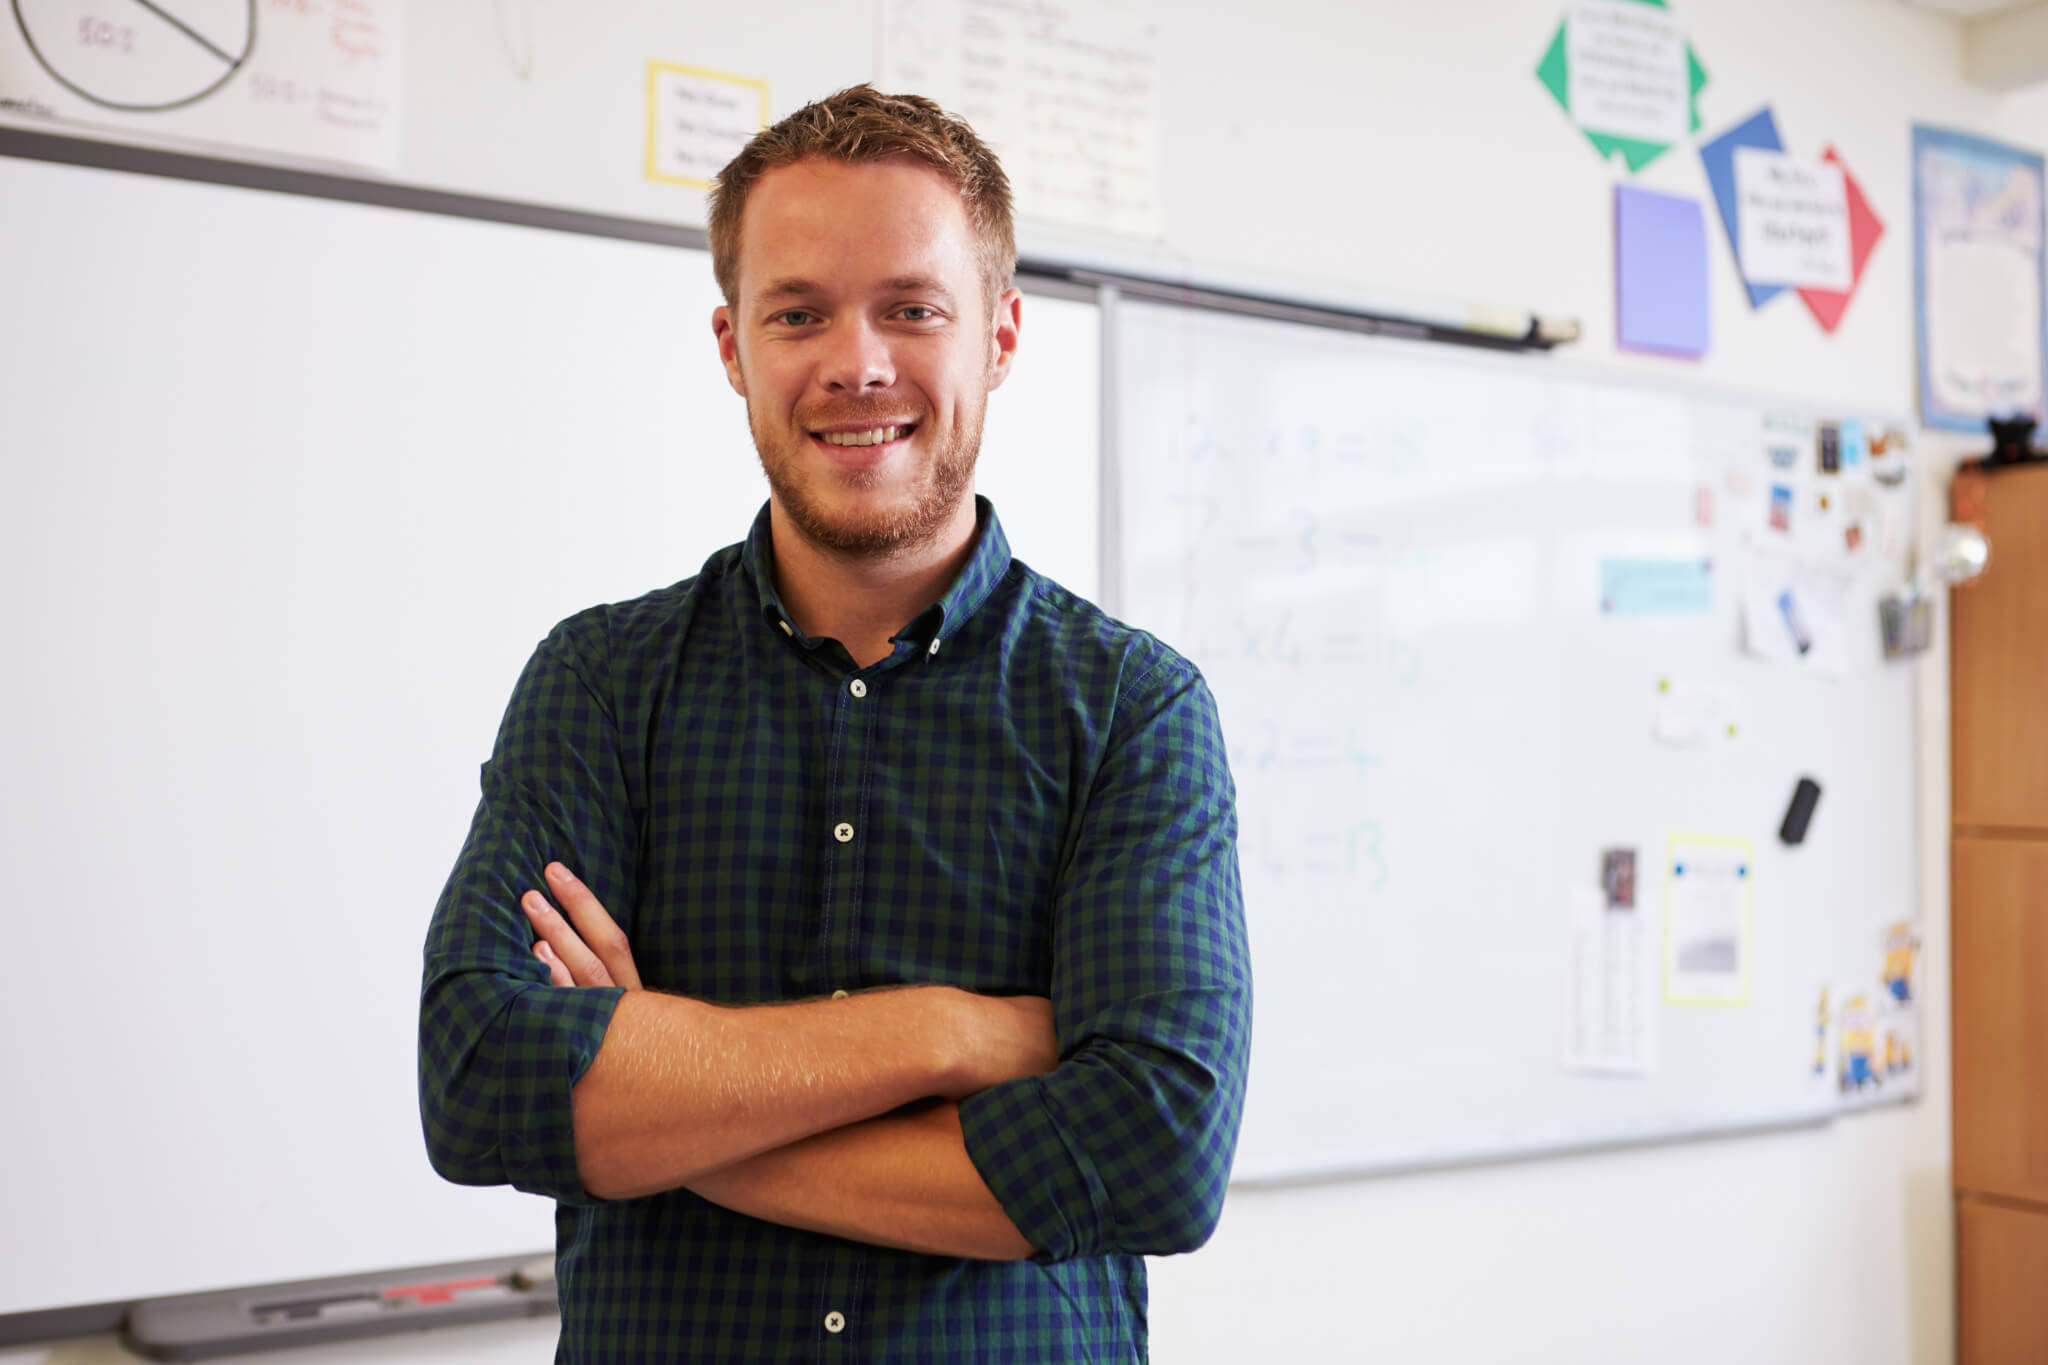 Teacher standing in front of a whiteboard